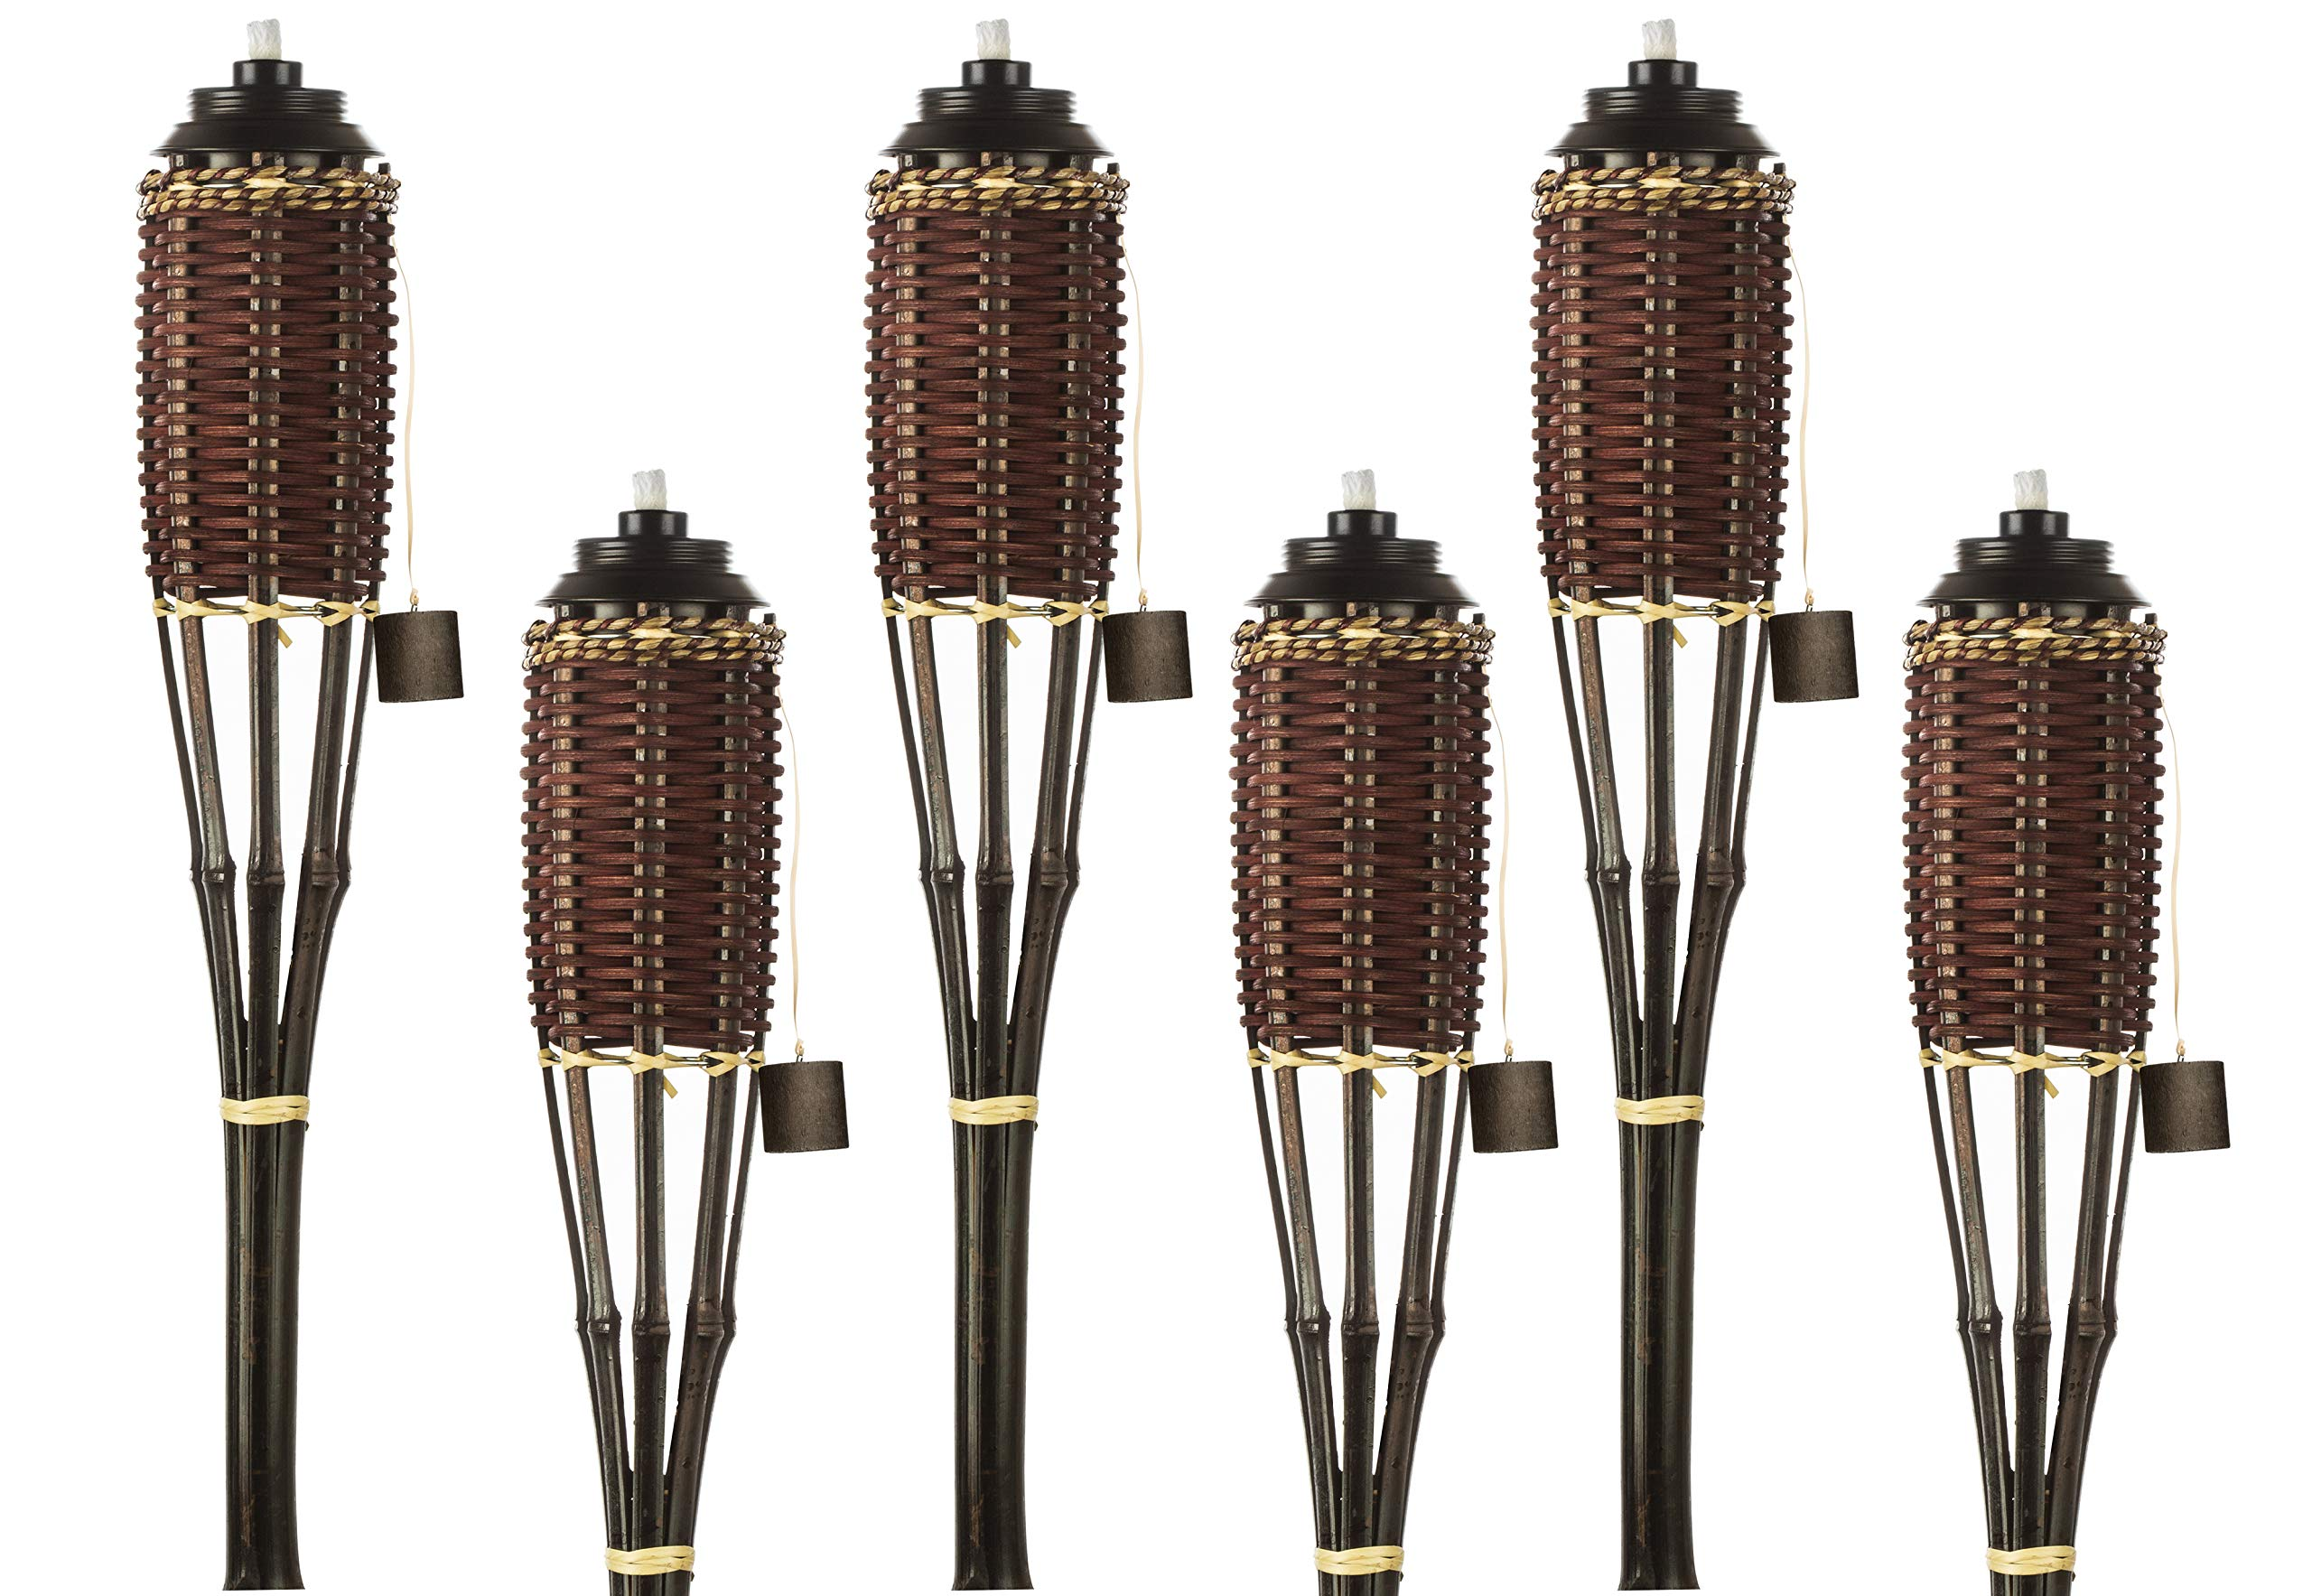 Brown Weave Bamboo Torches; Decorative Torches; Fiberglass Wicks; Extra-Large (16oz) Metal Canisters for Longer Lasting Burn; Stands 59'' Tall (6 Pack) by 5 Star North